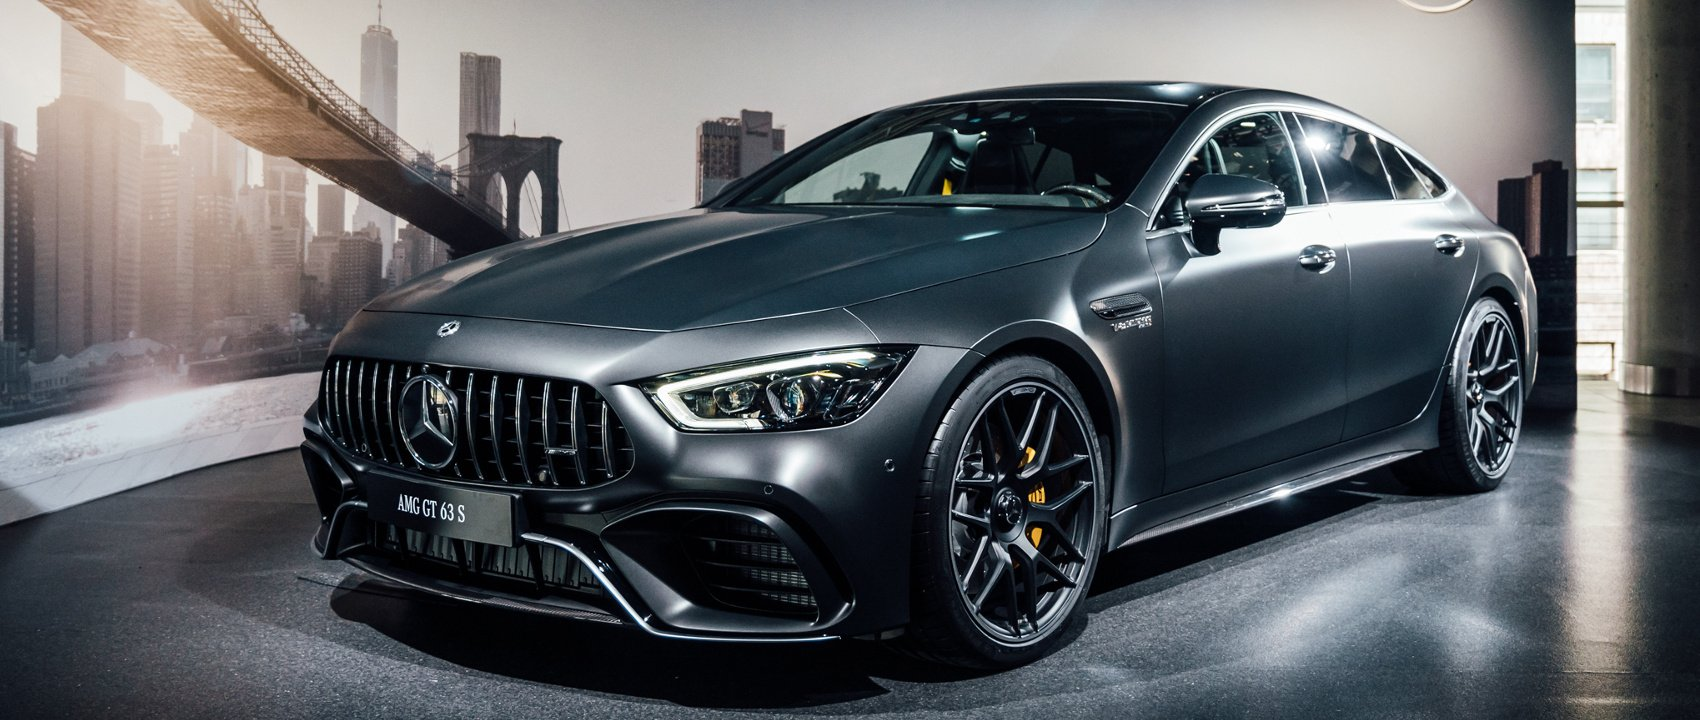 The Mercedes-AMG GT 63 S 4MATIC+ at the New York International Auto Show 2018.